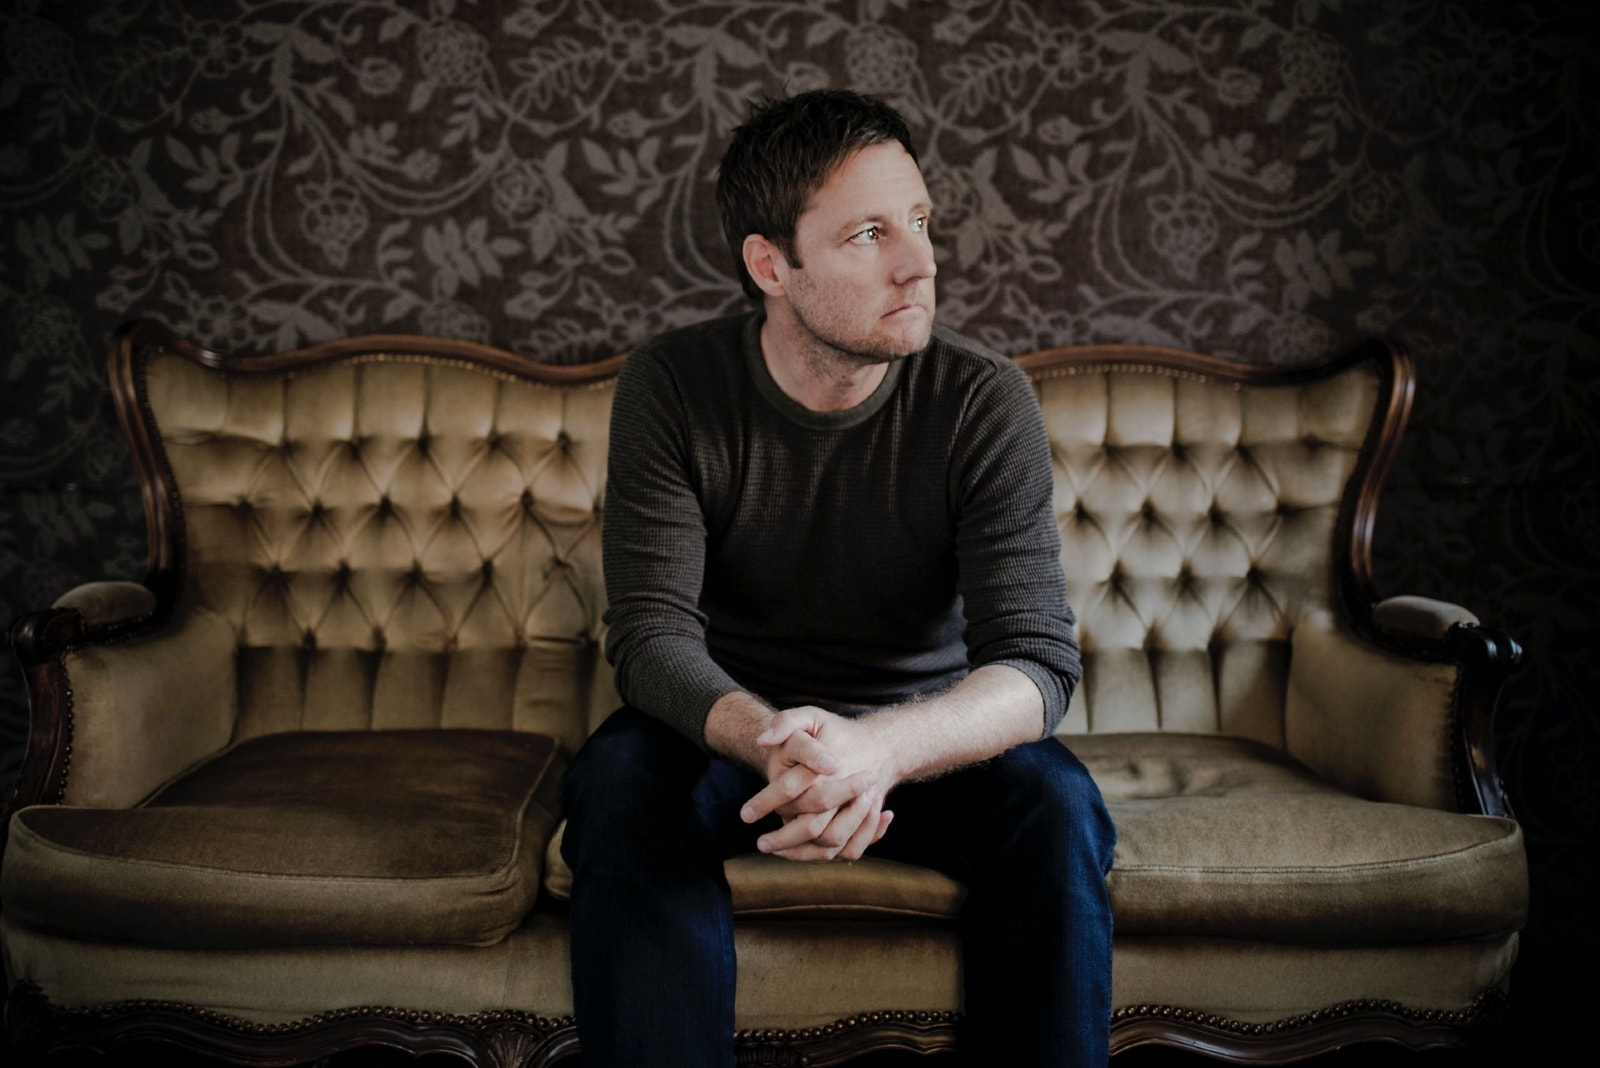 pensive man in gray shirt sitting on couch